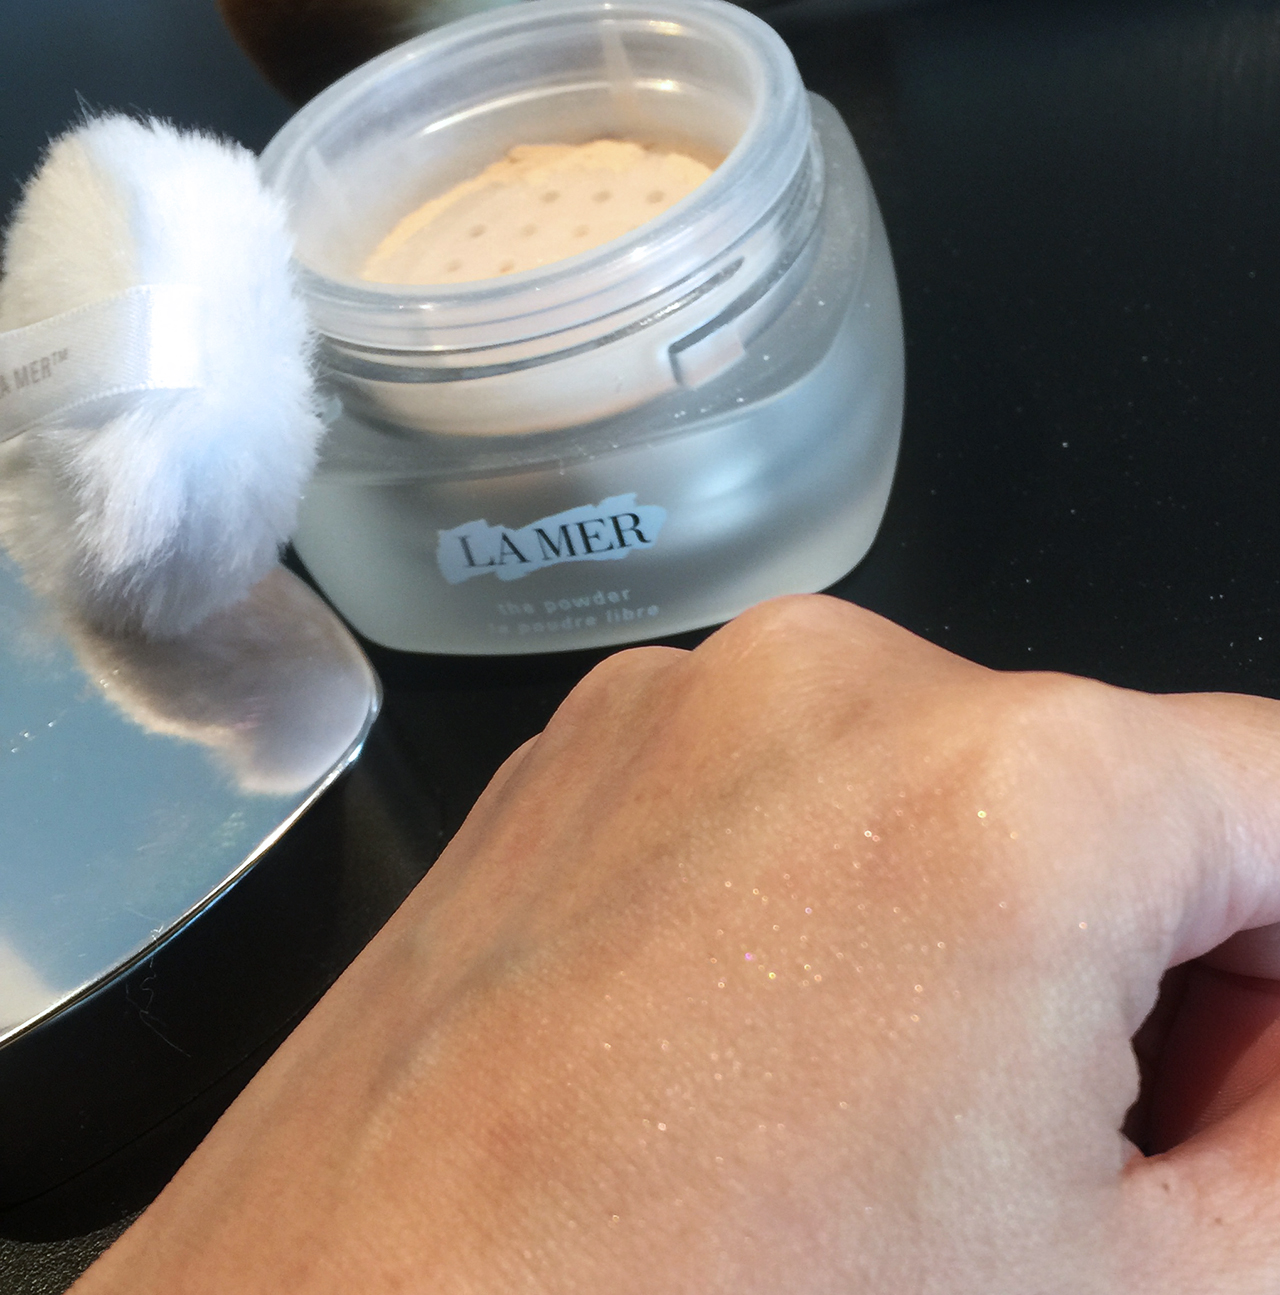 La Mer The Powder swatch